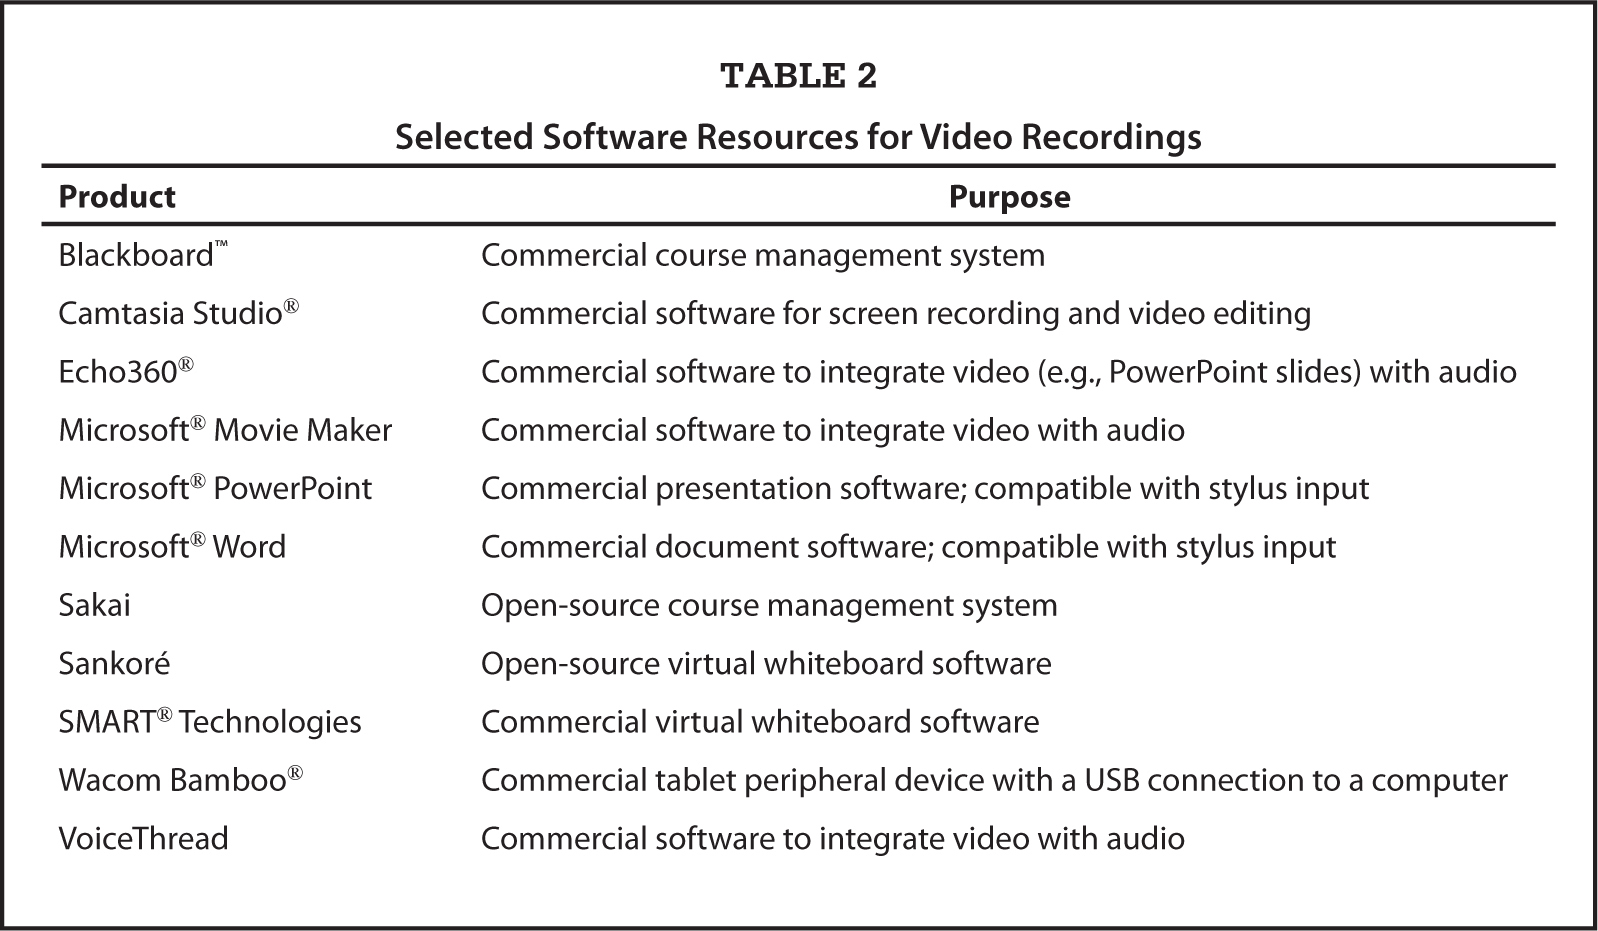 Selected Software Resources for Video Recordings